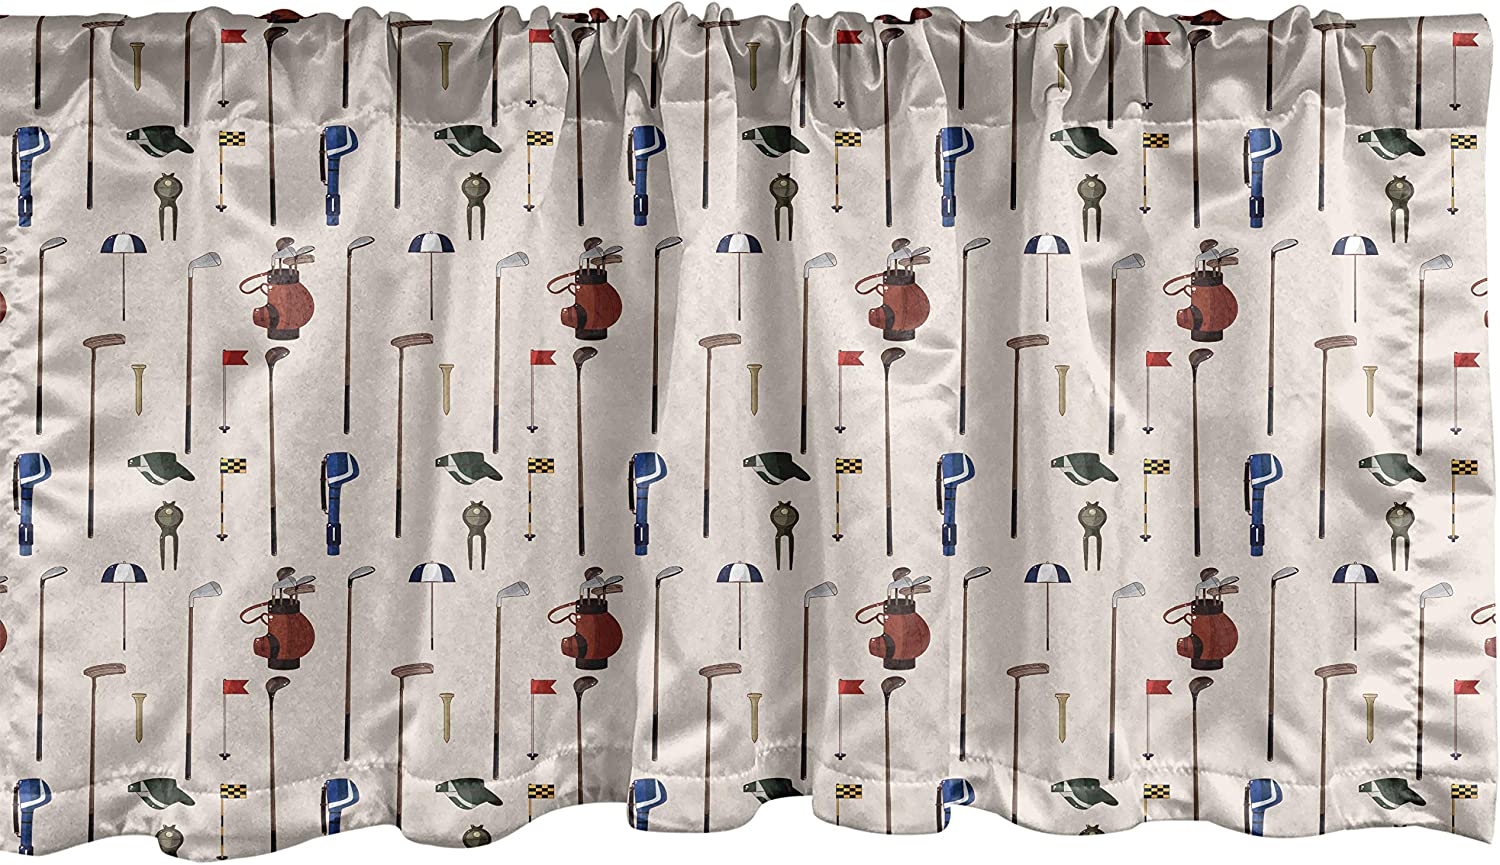 Ambesonne Golf Window Valance, Club and Ball Sport Theme Equipment Stroke Play Golfer Activity Leisure Hobby Design, Curtain Valance for Kitchen Bedroom Decor with Rod Pocket, 54